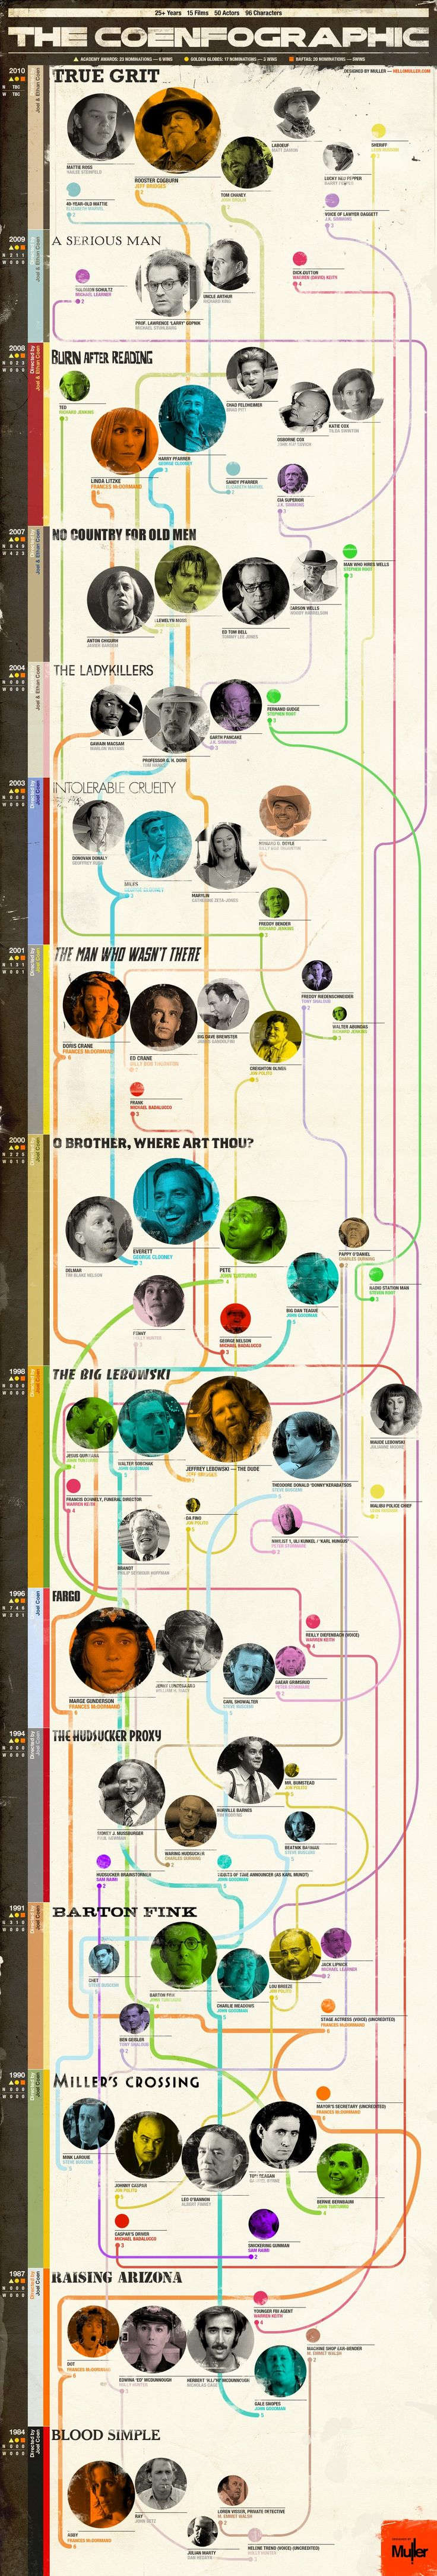 Filmography of the Coen Brothers